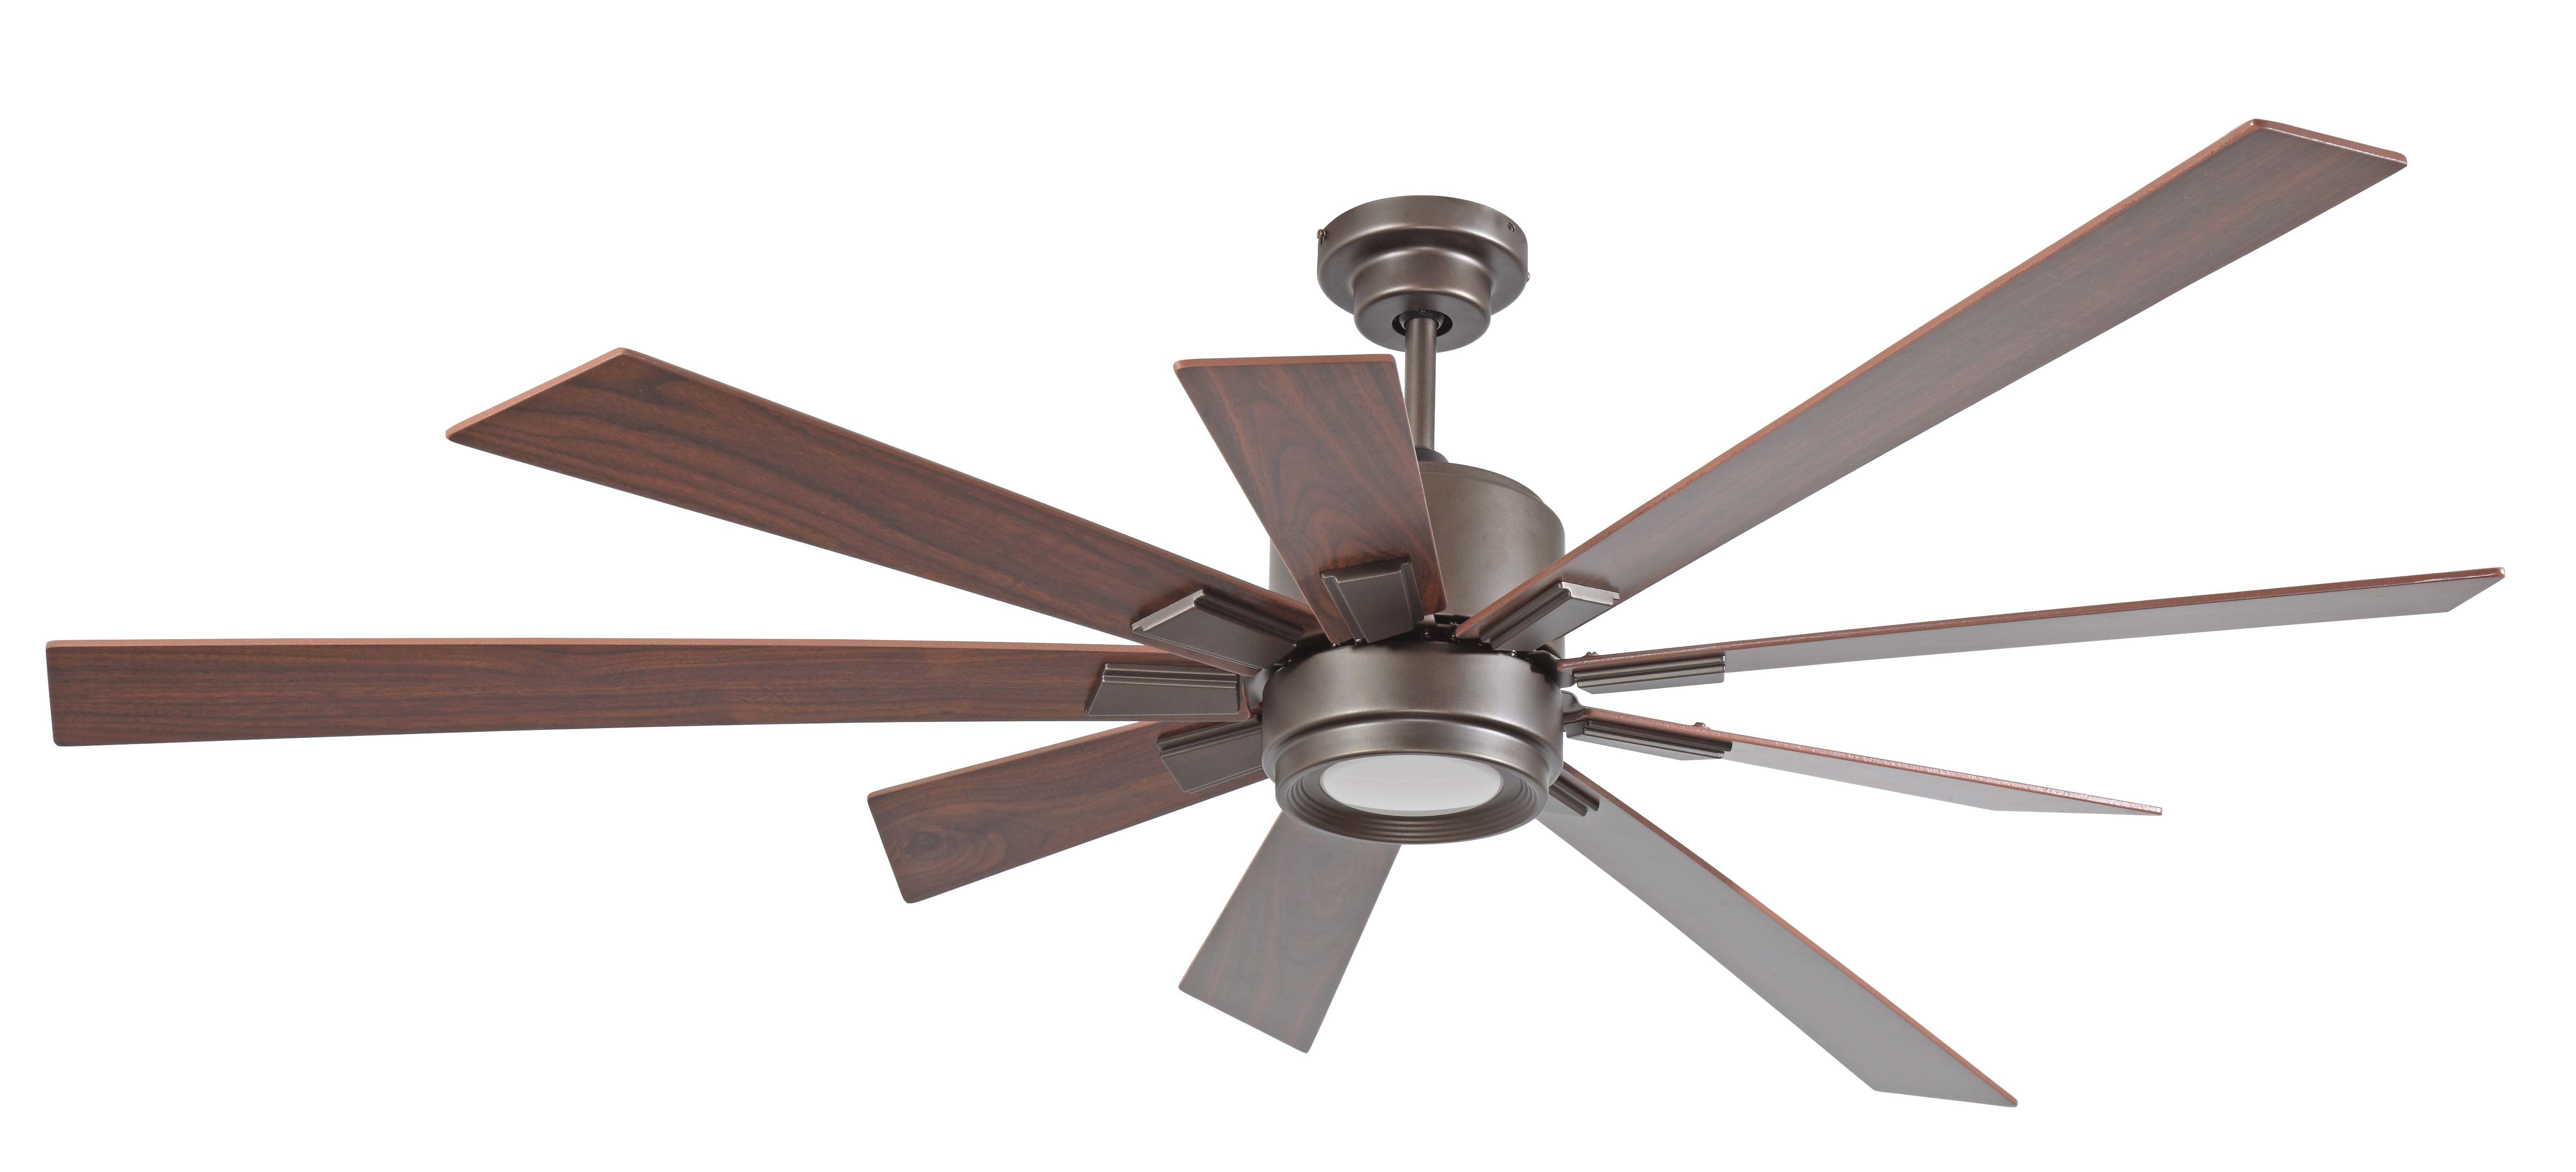 "72"" Birney 9 Blade Ceiling Fan, Light Kit Included With Well Known Bankston 8 Blade Led Ceiling Fans (View 15 of 20)"